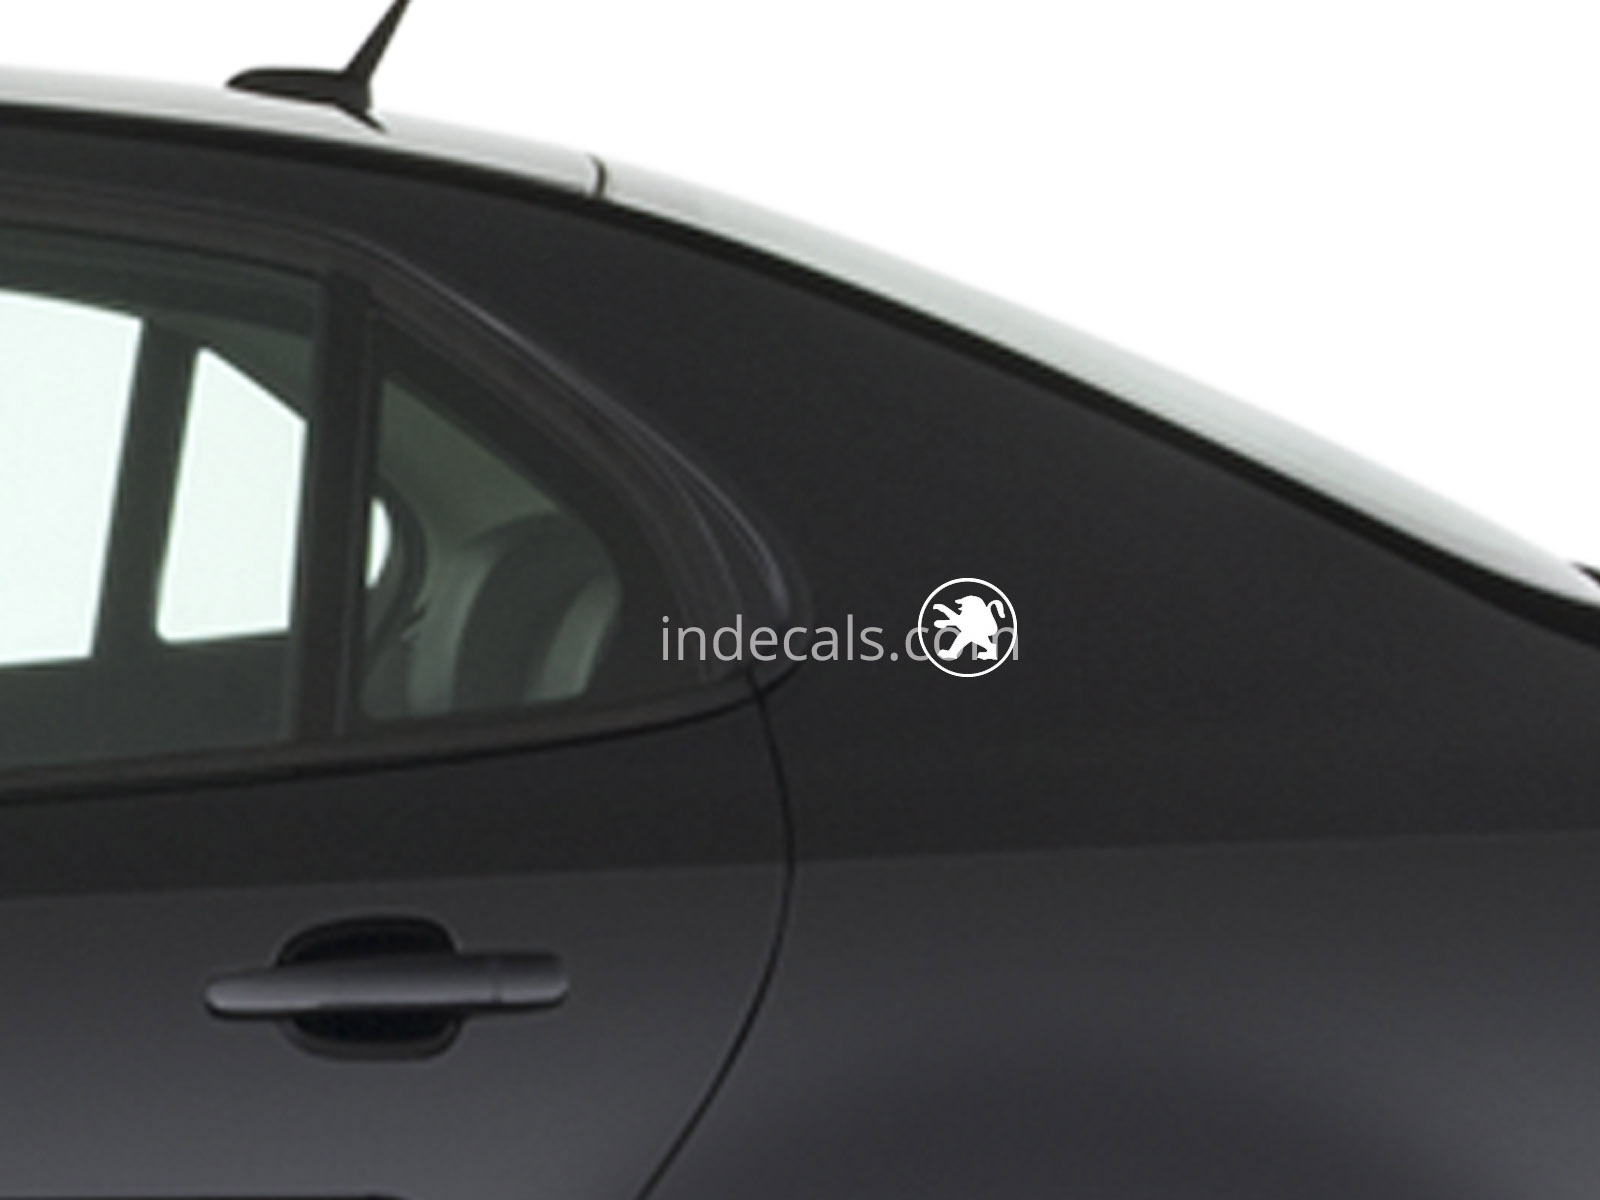 3 x Peugeot Stickers for Rear Wing - White